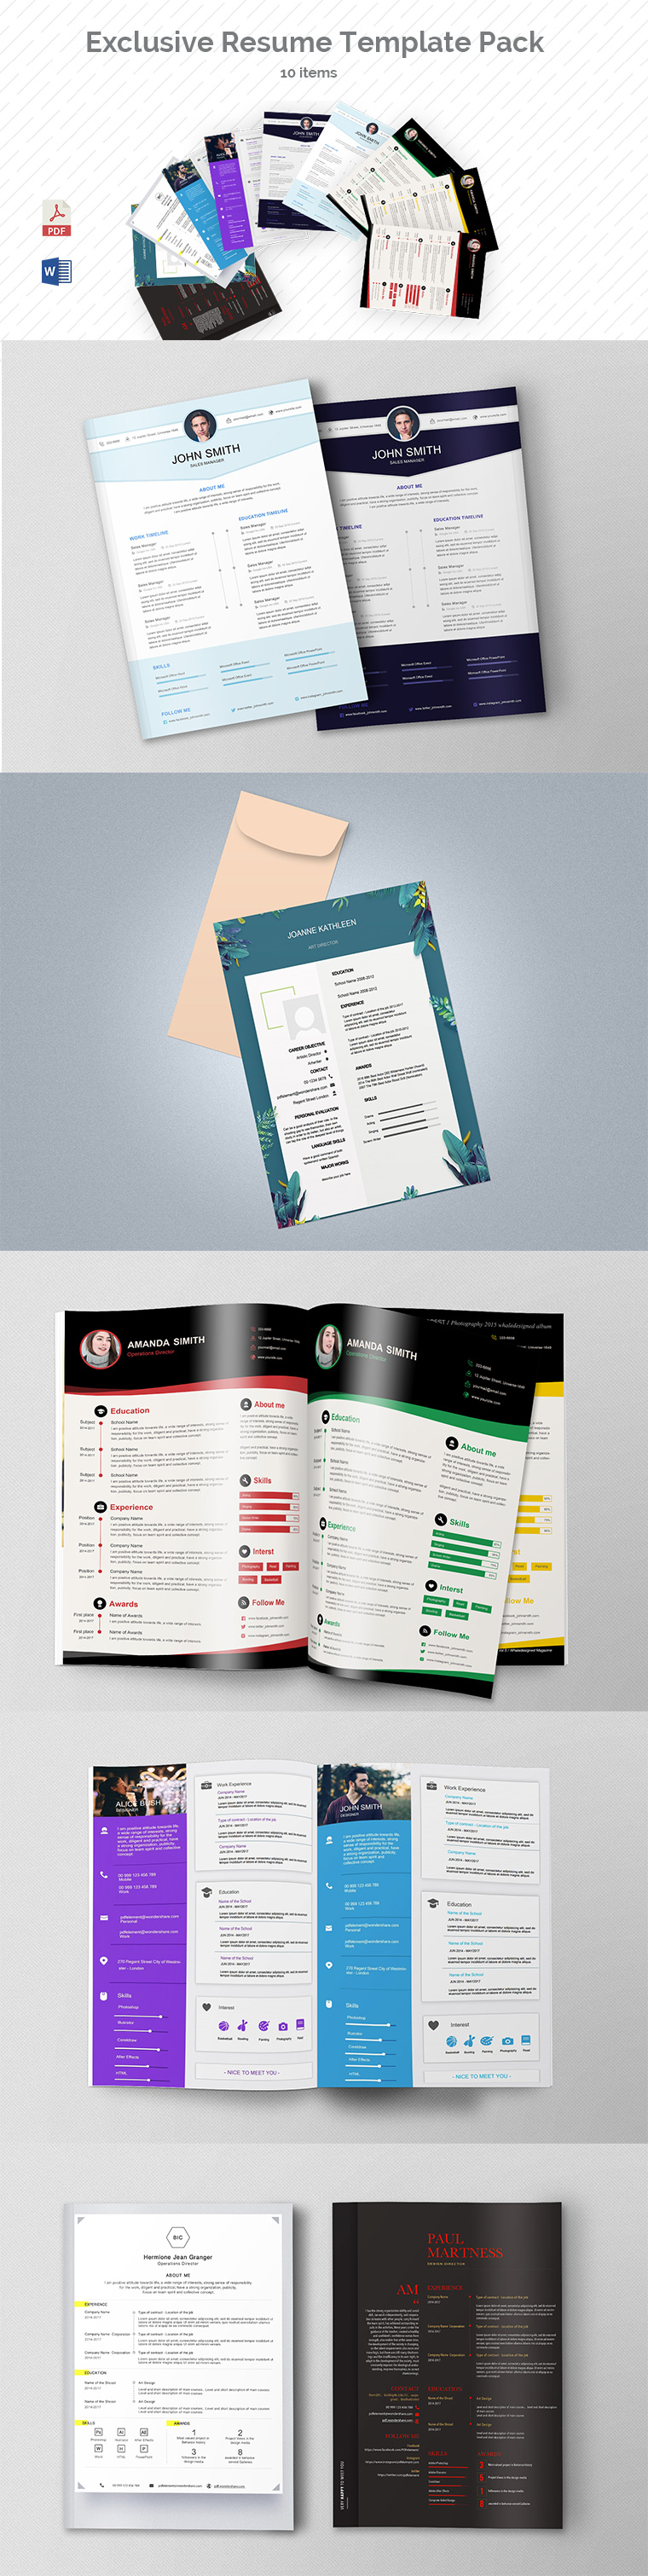 Exclusive Resume Template Pack (10 Items) Templates